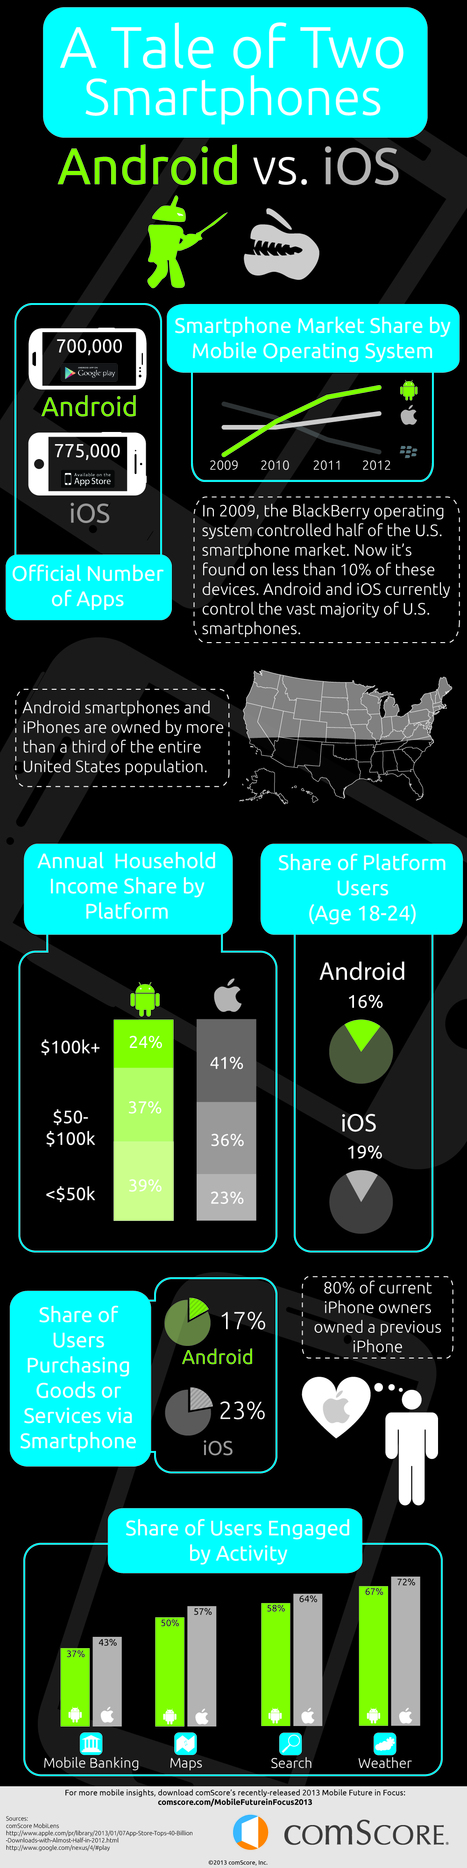 Android vs. iOS: User Differences Every Developer Should Know | Custom App Development | Scoop.it